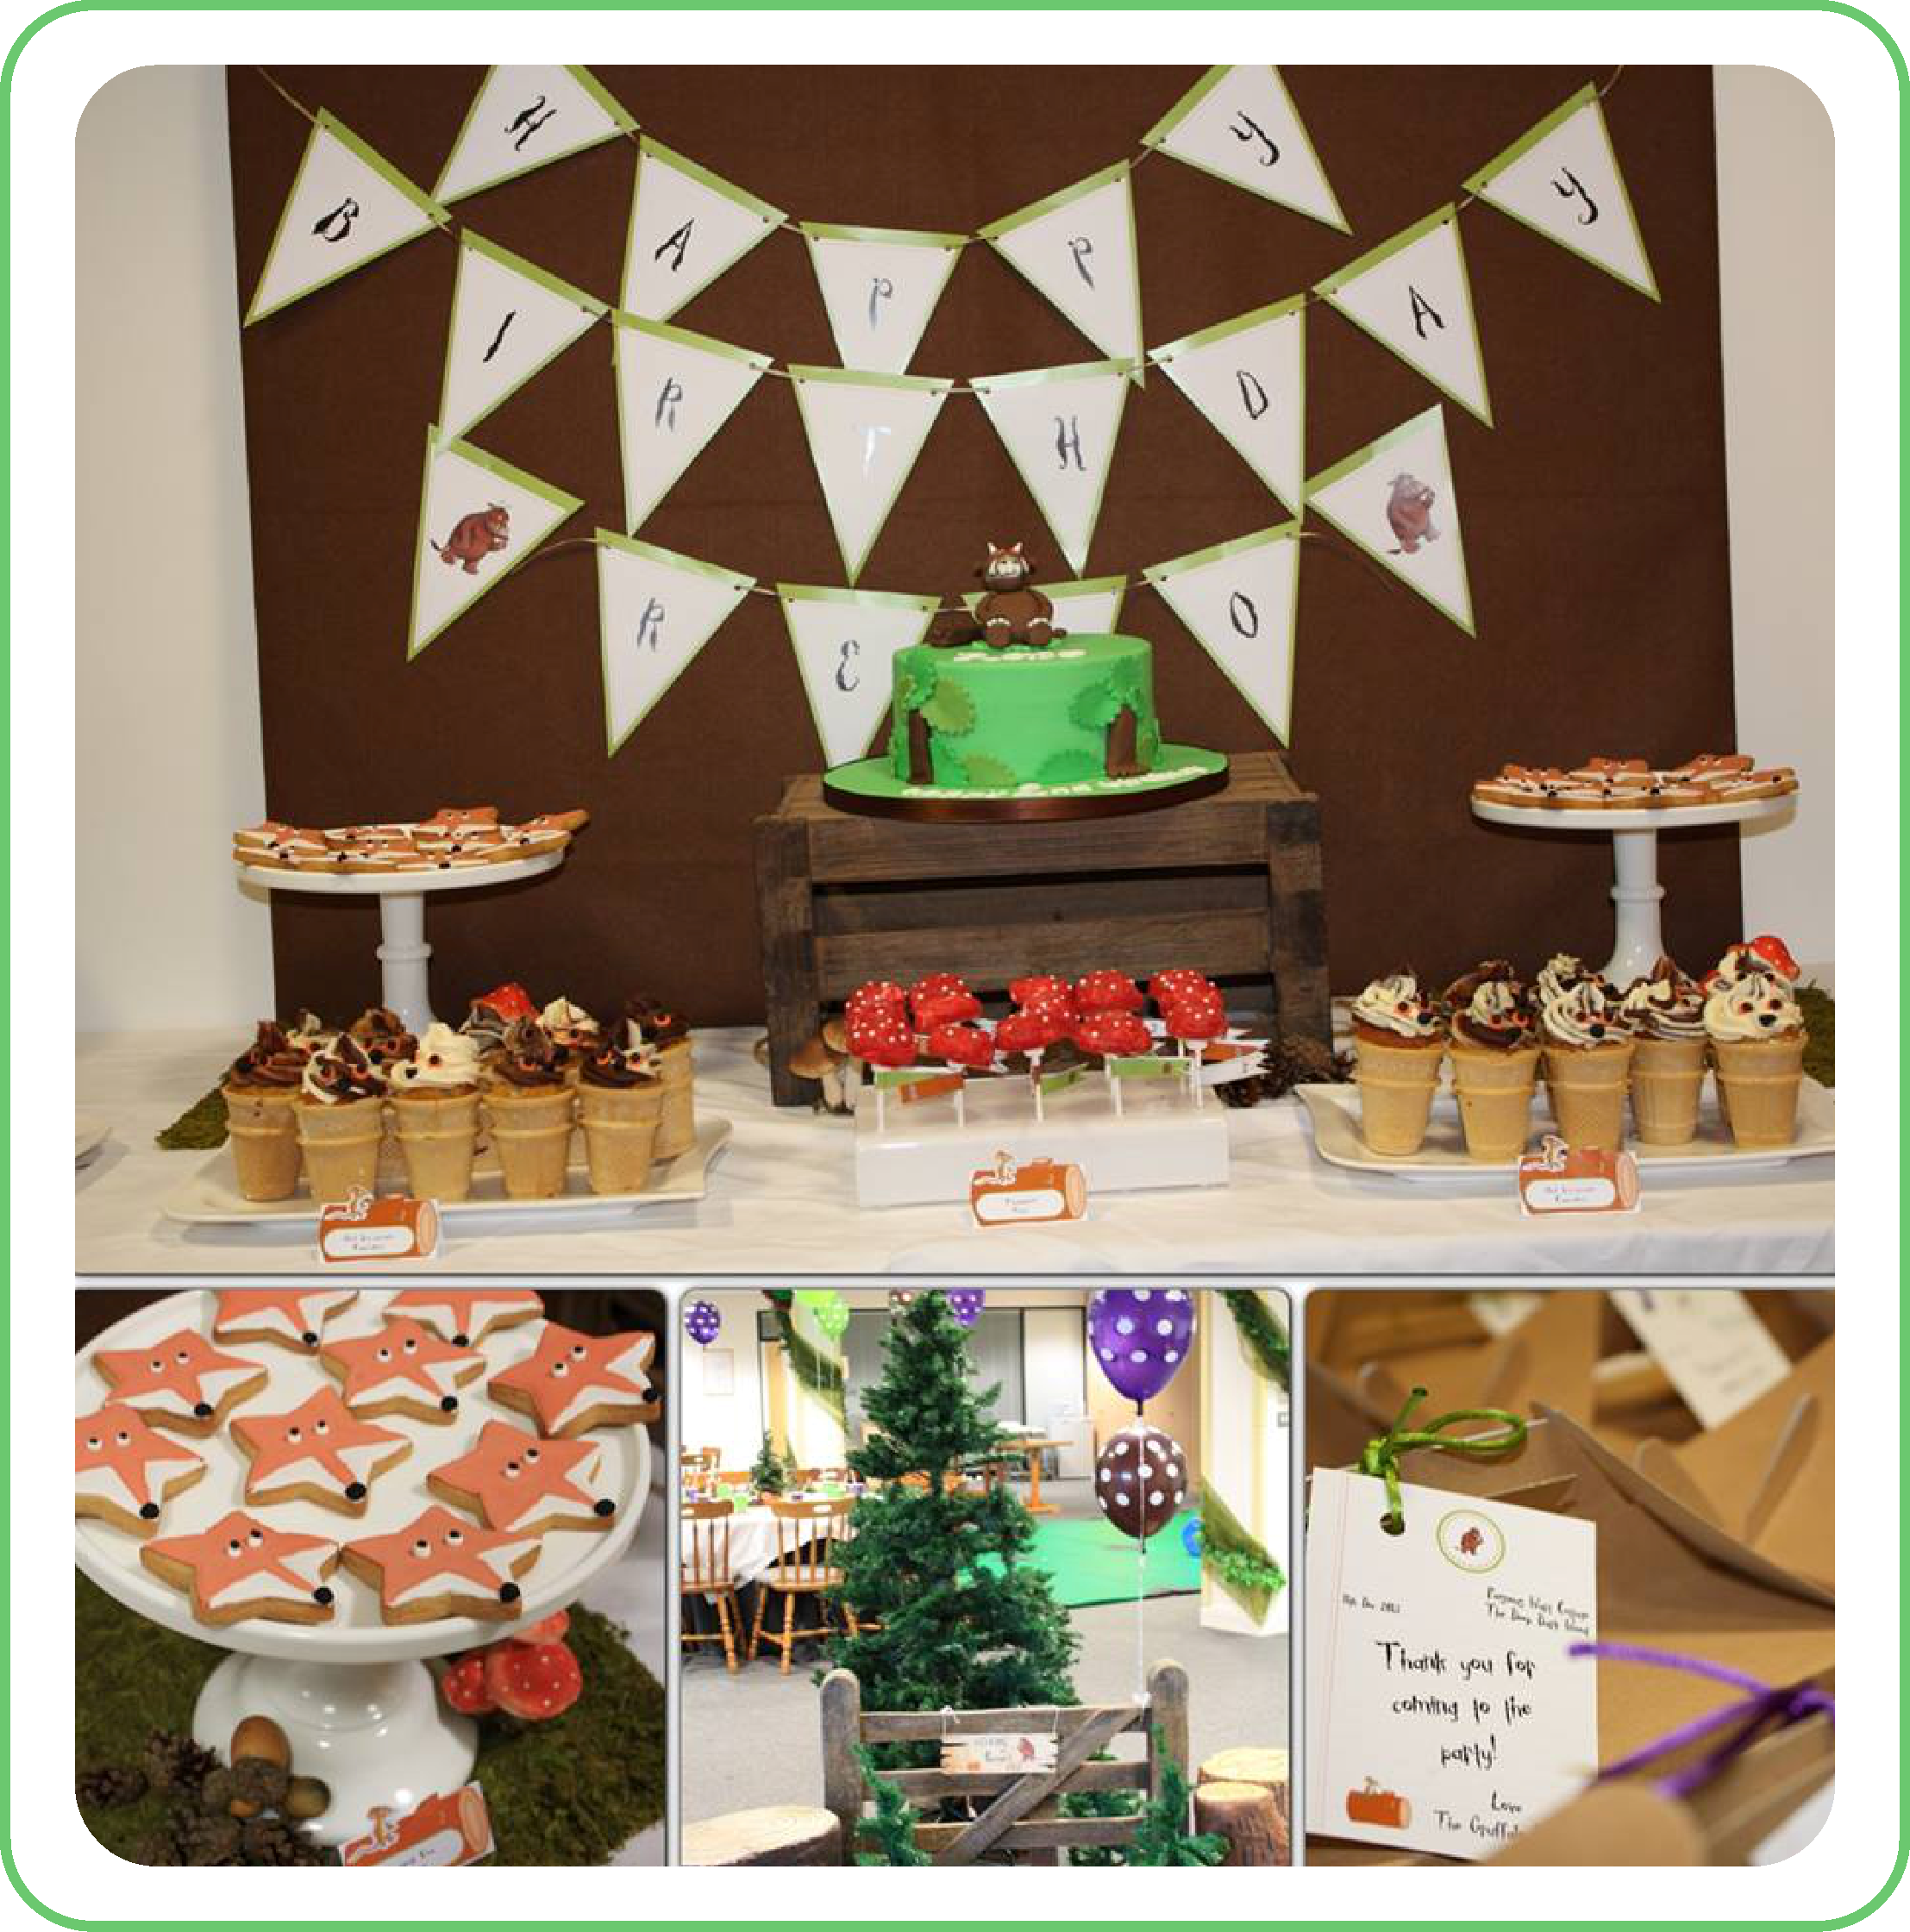 Gruffalo Party Decoration Ideas.png